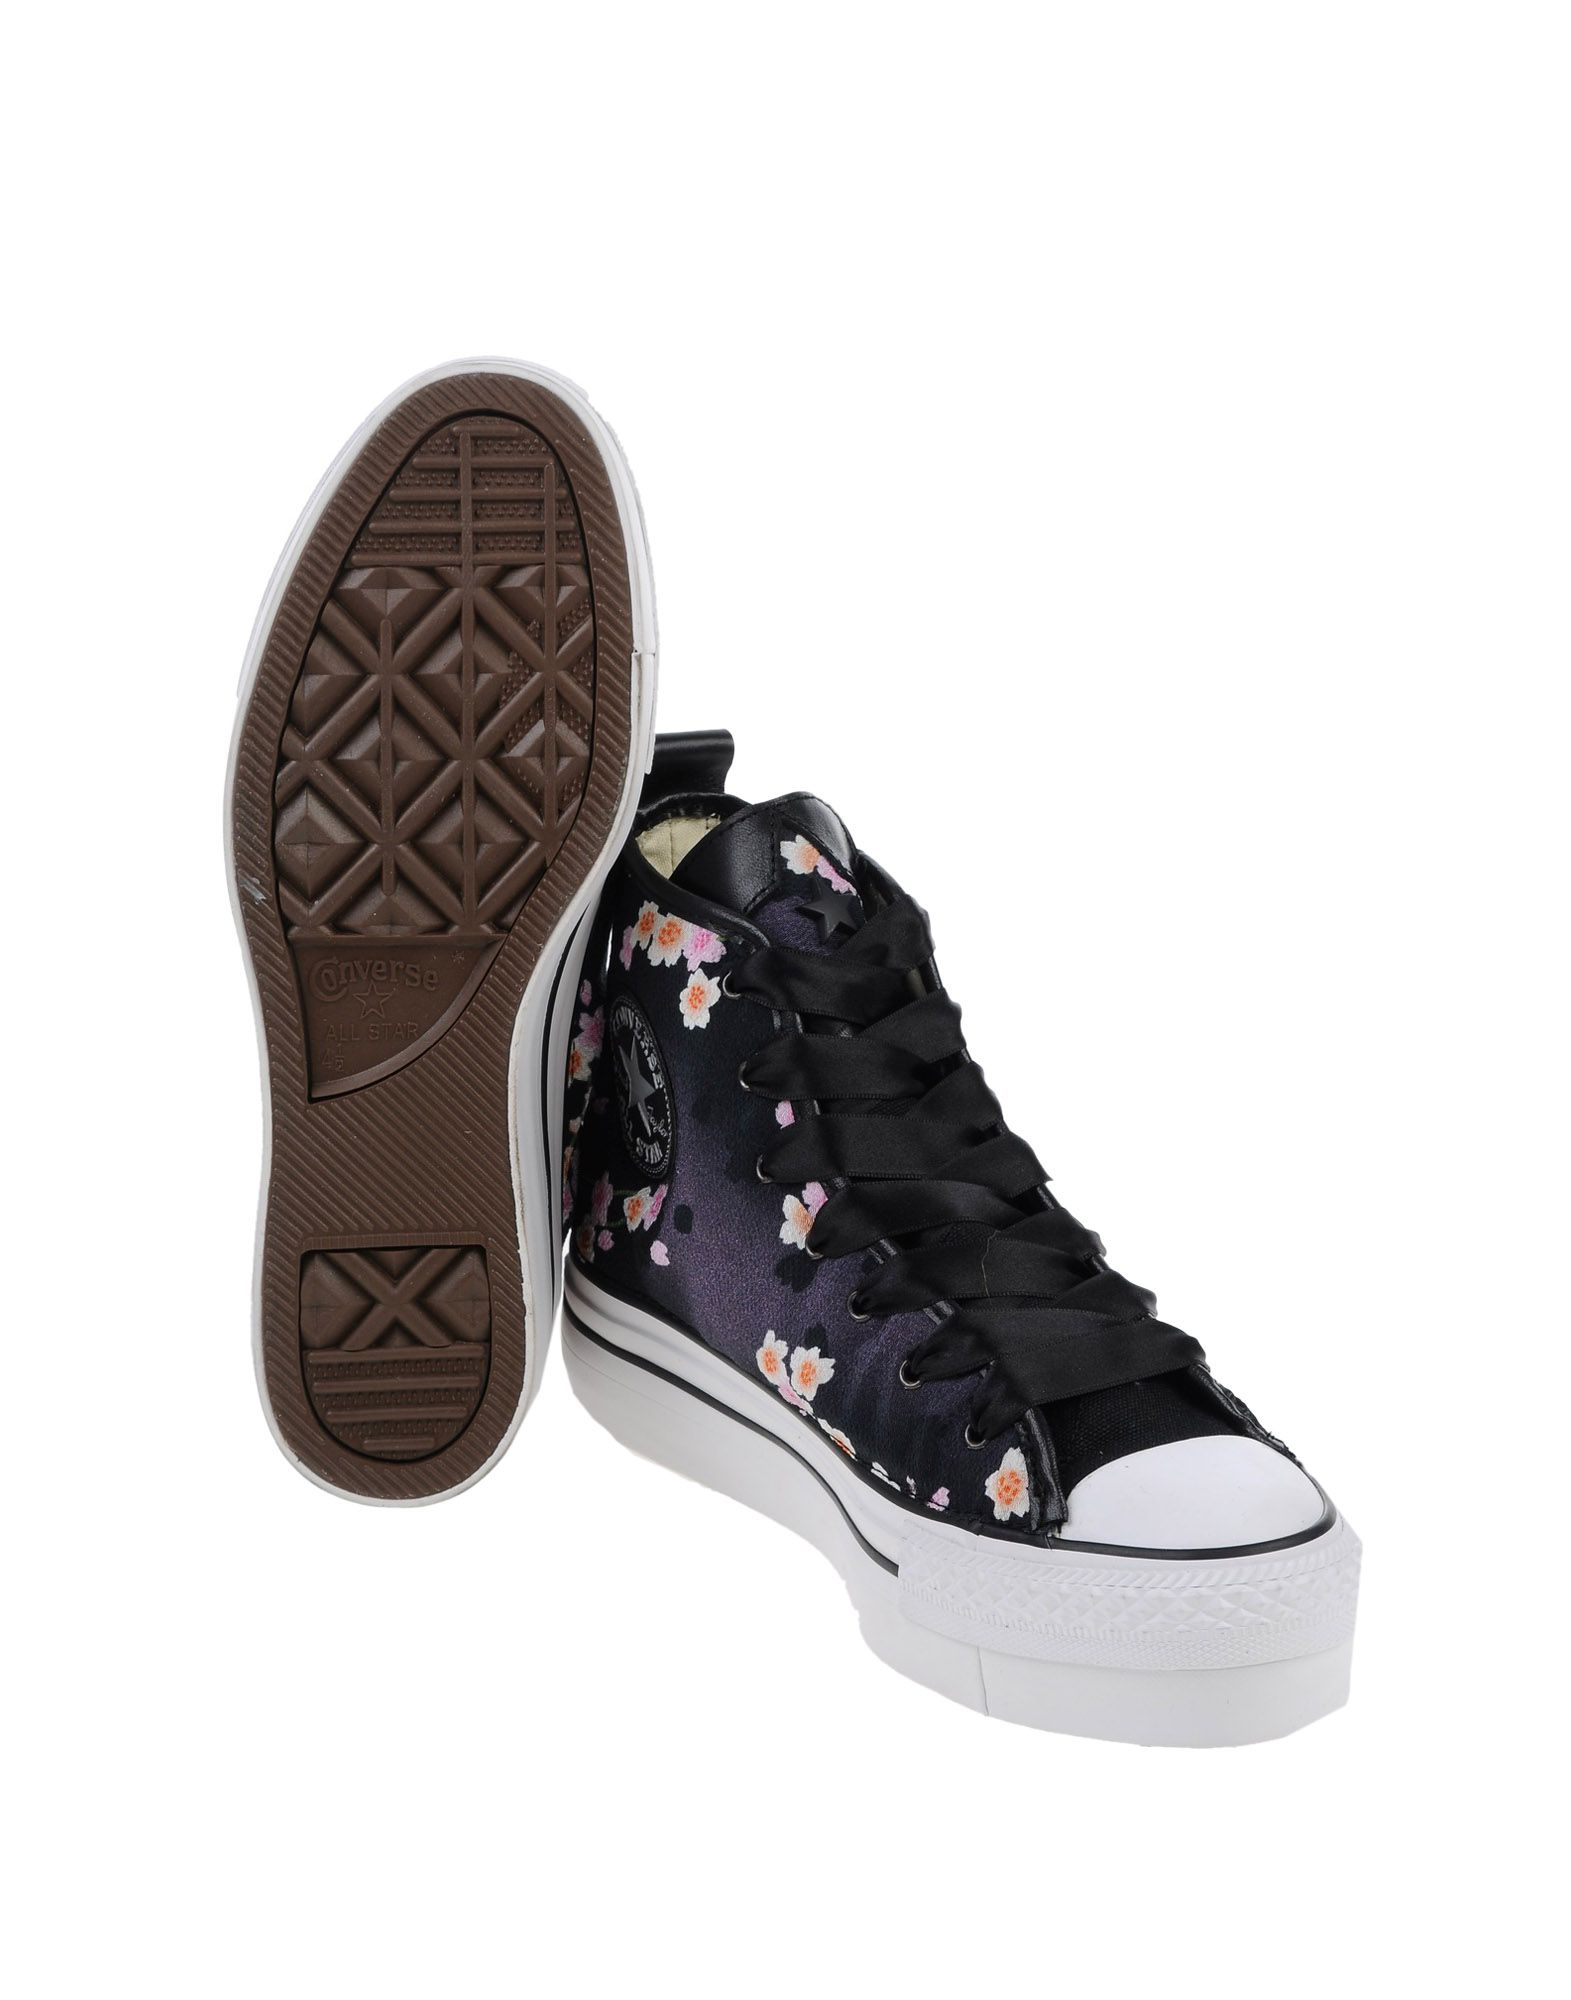 Sneakers Converse Limited Edition All Star Hi Platform - Femme - Sneakers Converse Limited Edition sur